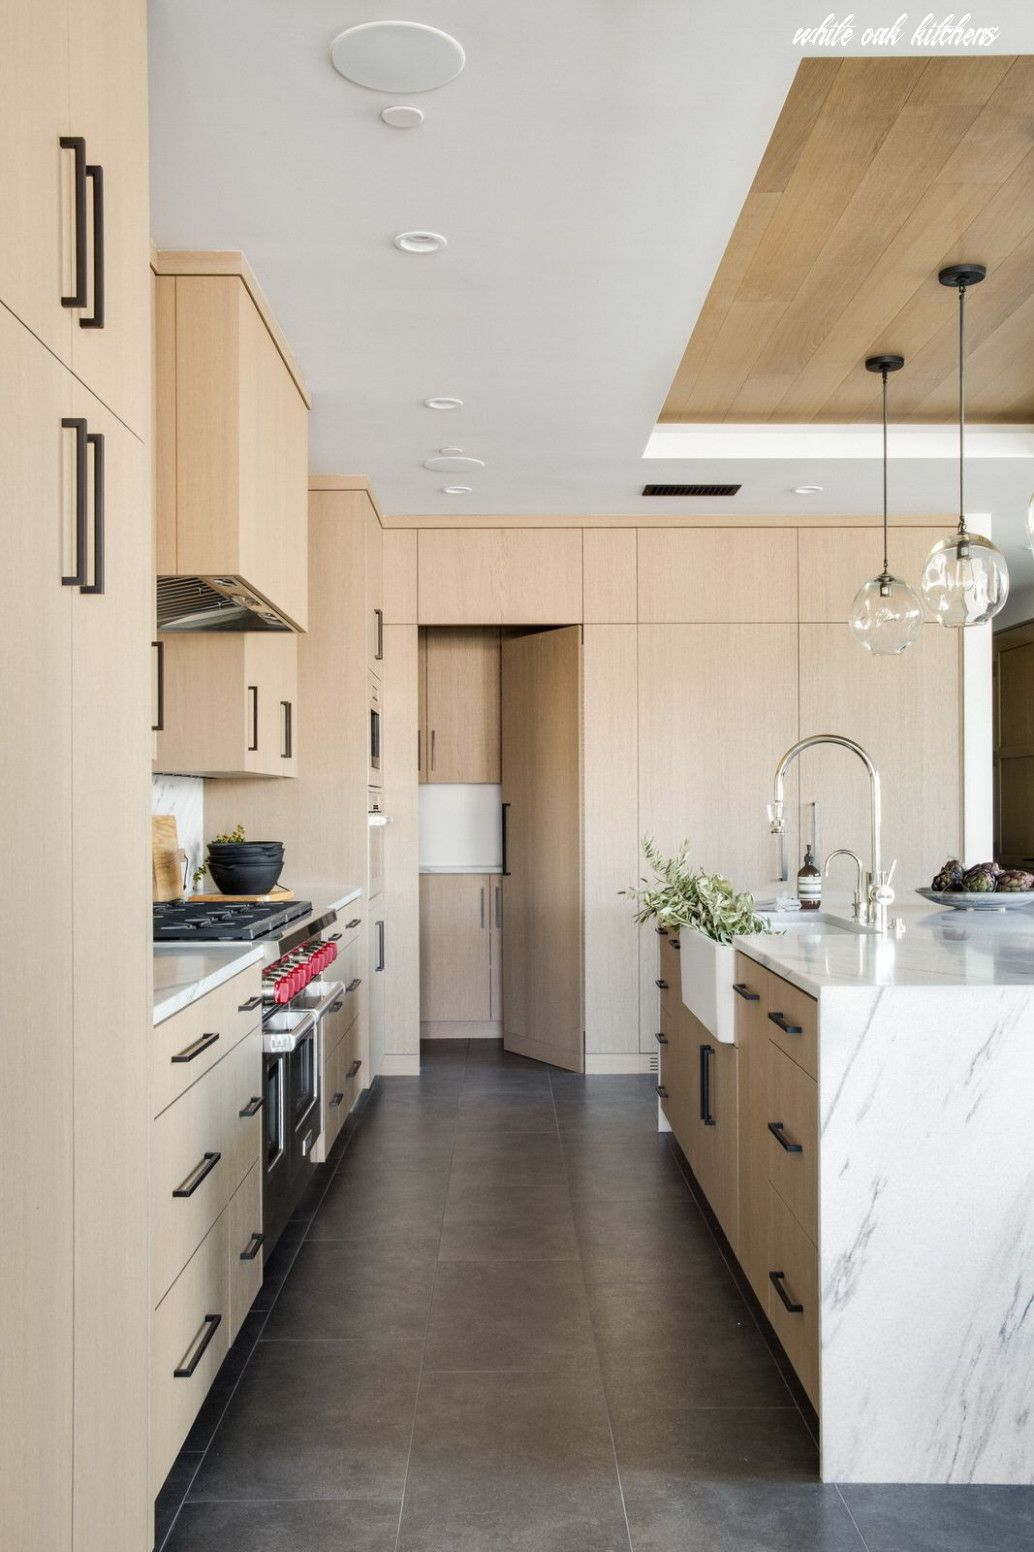 The Reasons Why We Love White Oak Kitchens In 2020 White Oak Kitchen Brown Kitchen Cabinets Oak Kitchen Cabinets